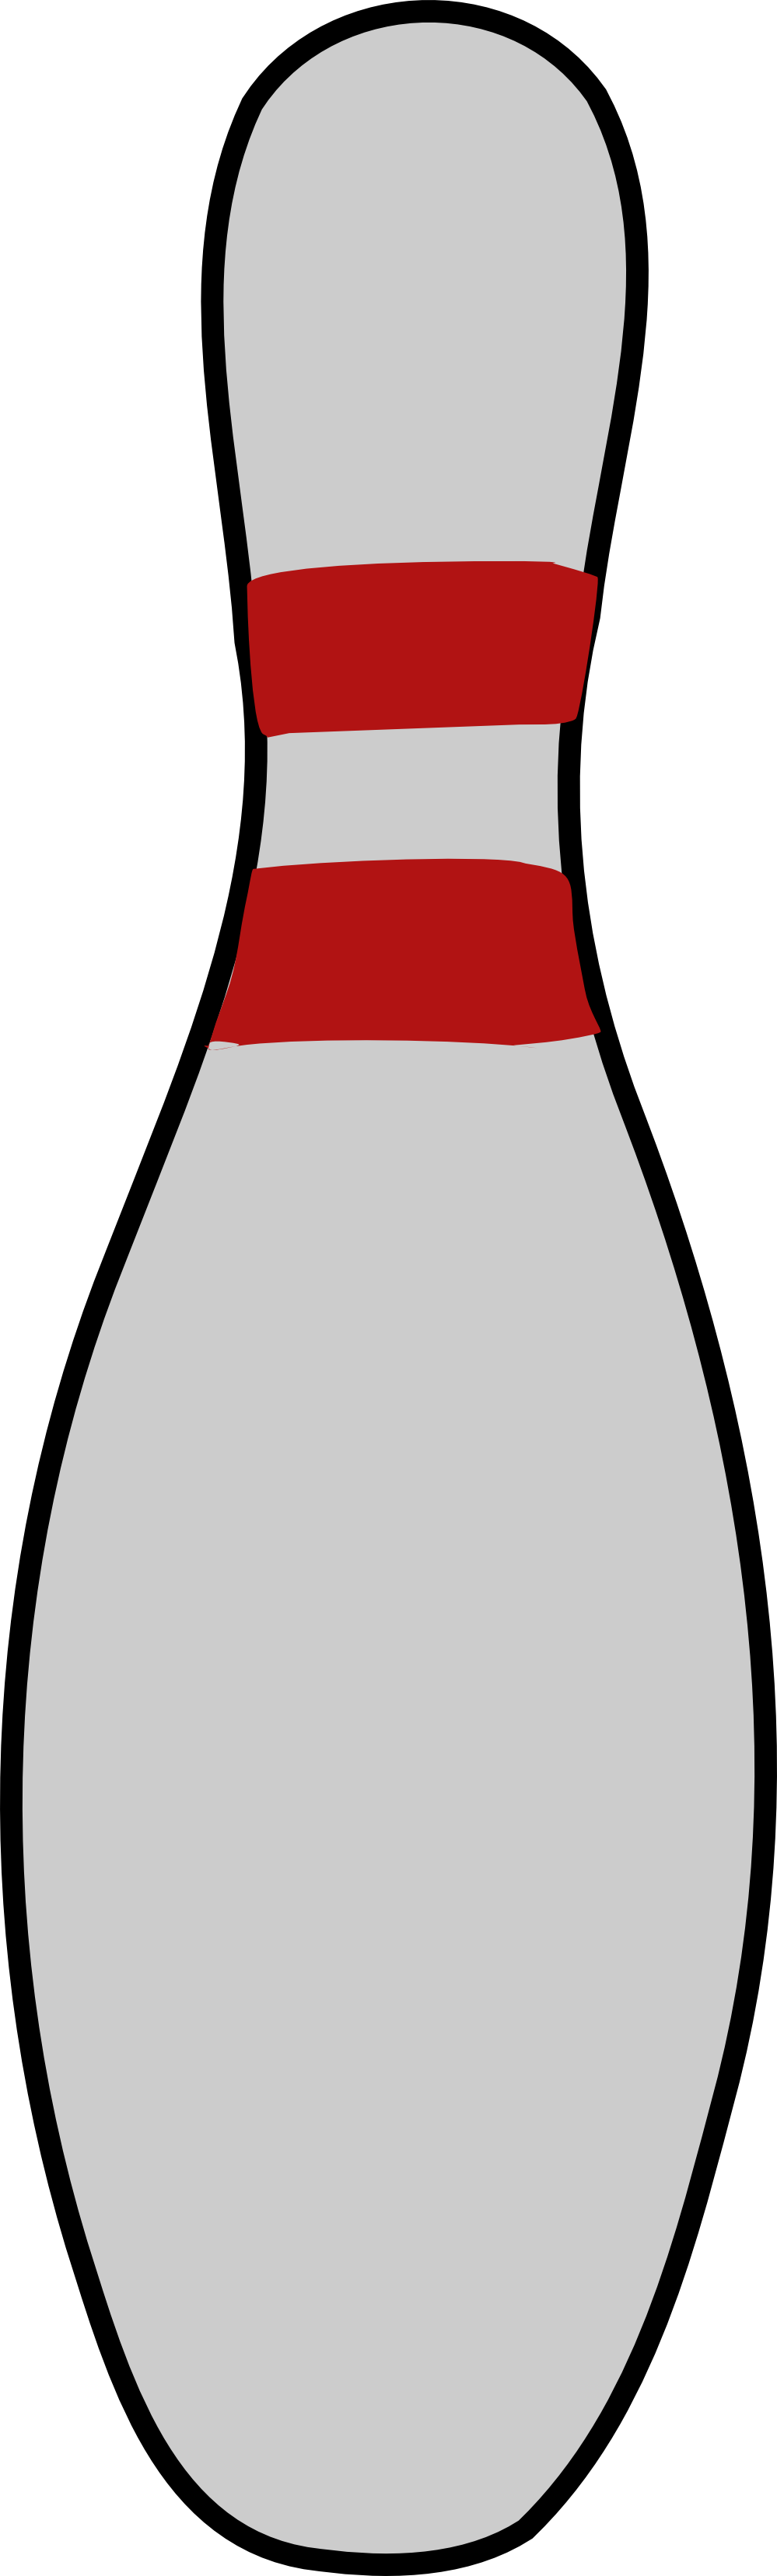 12 Bowling Pin Coloring Page   Free Cliparts That You Can Download To